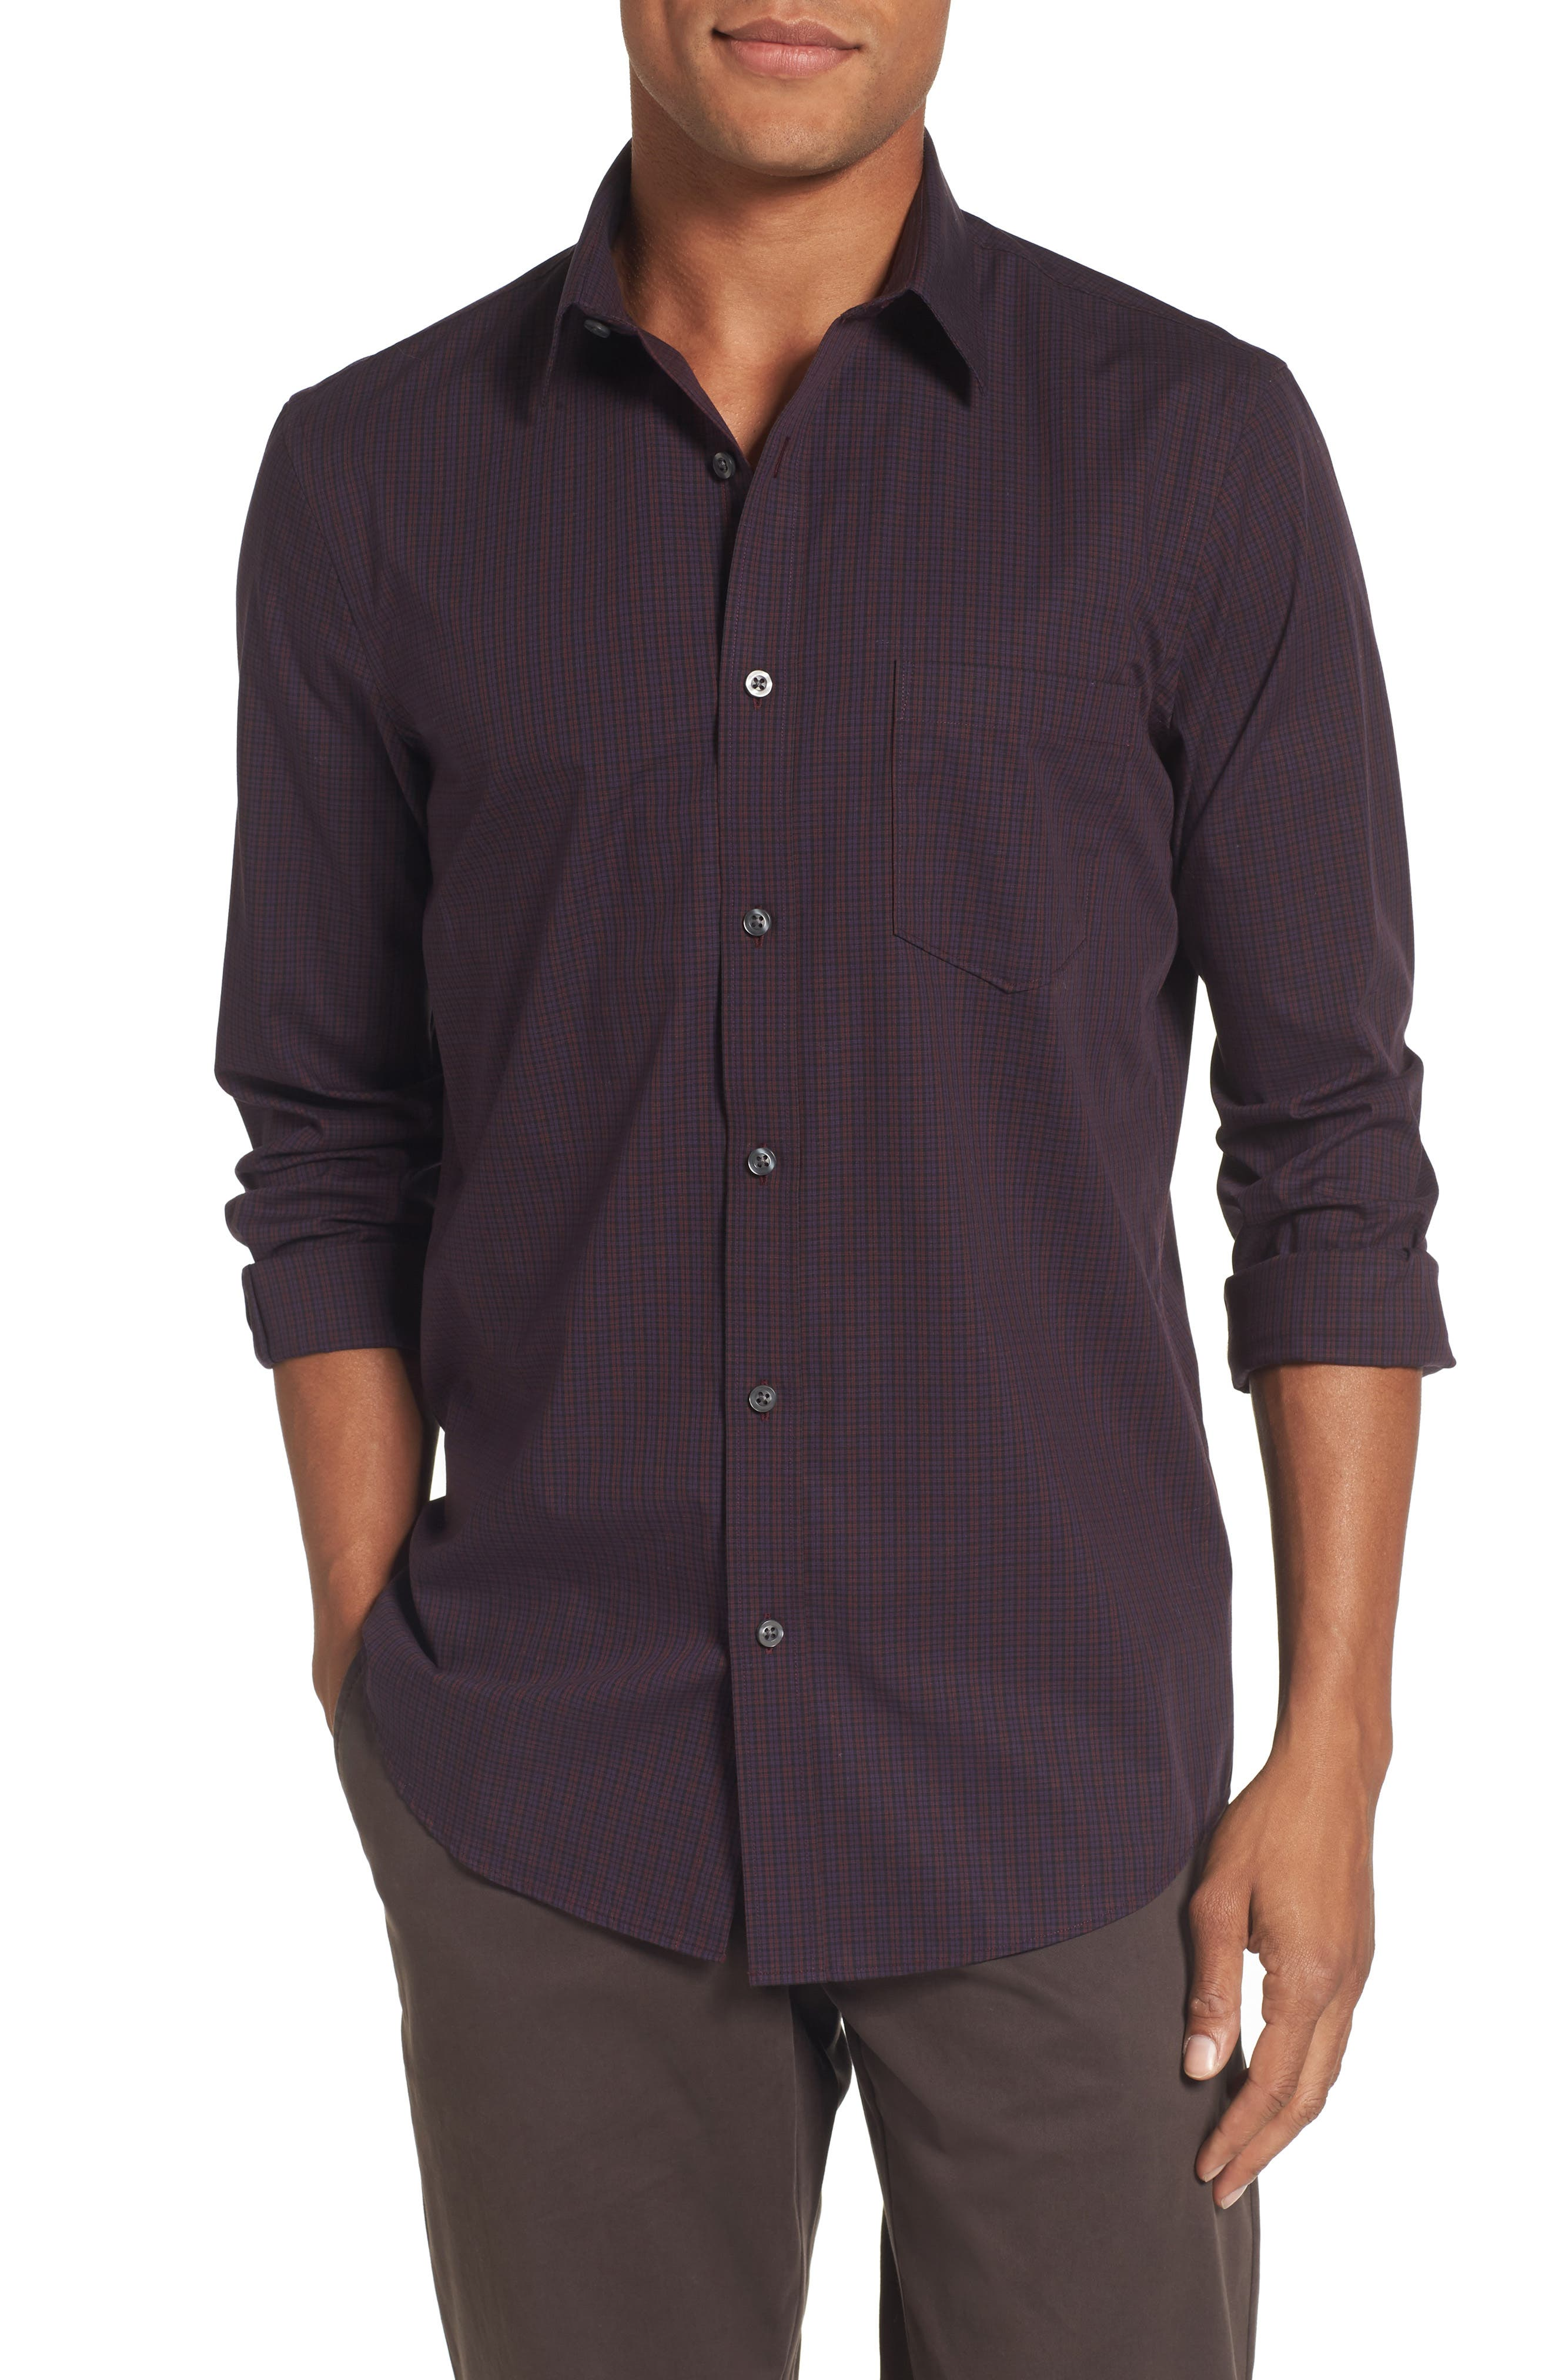 Nordstrom Men's Shop Non-Iron Regular Fit Mini Check Sport Shirt (Tall)